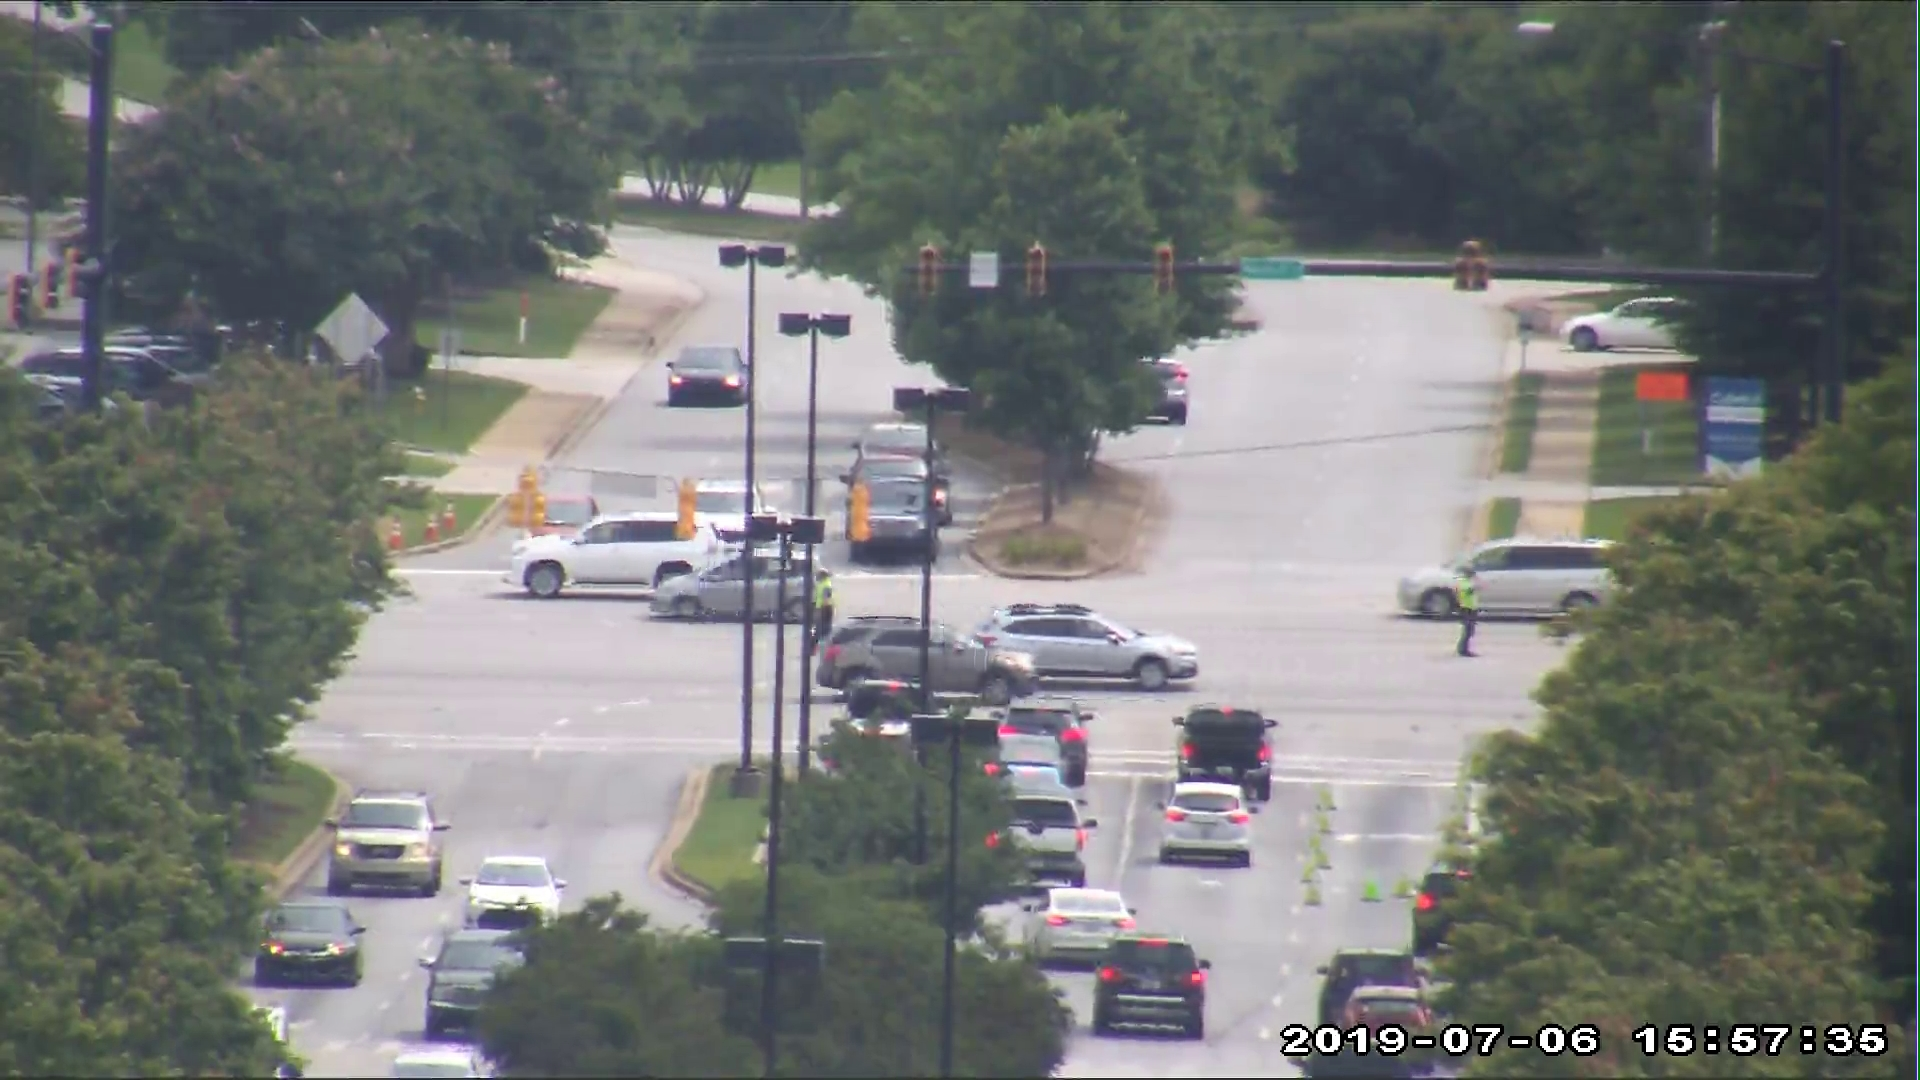 Greenville Police direct traffic at the intersection of Woodruff Road and Market Point Drive, Saturday, July 6, 2019.